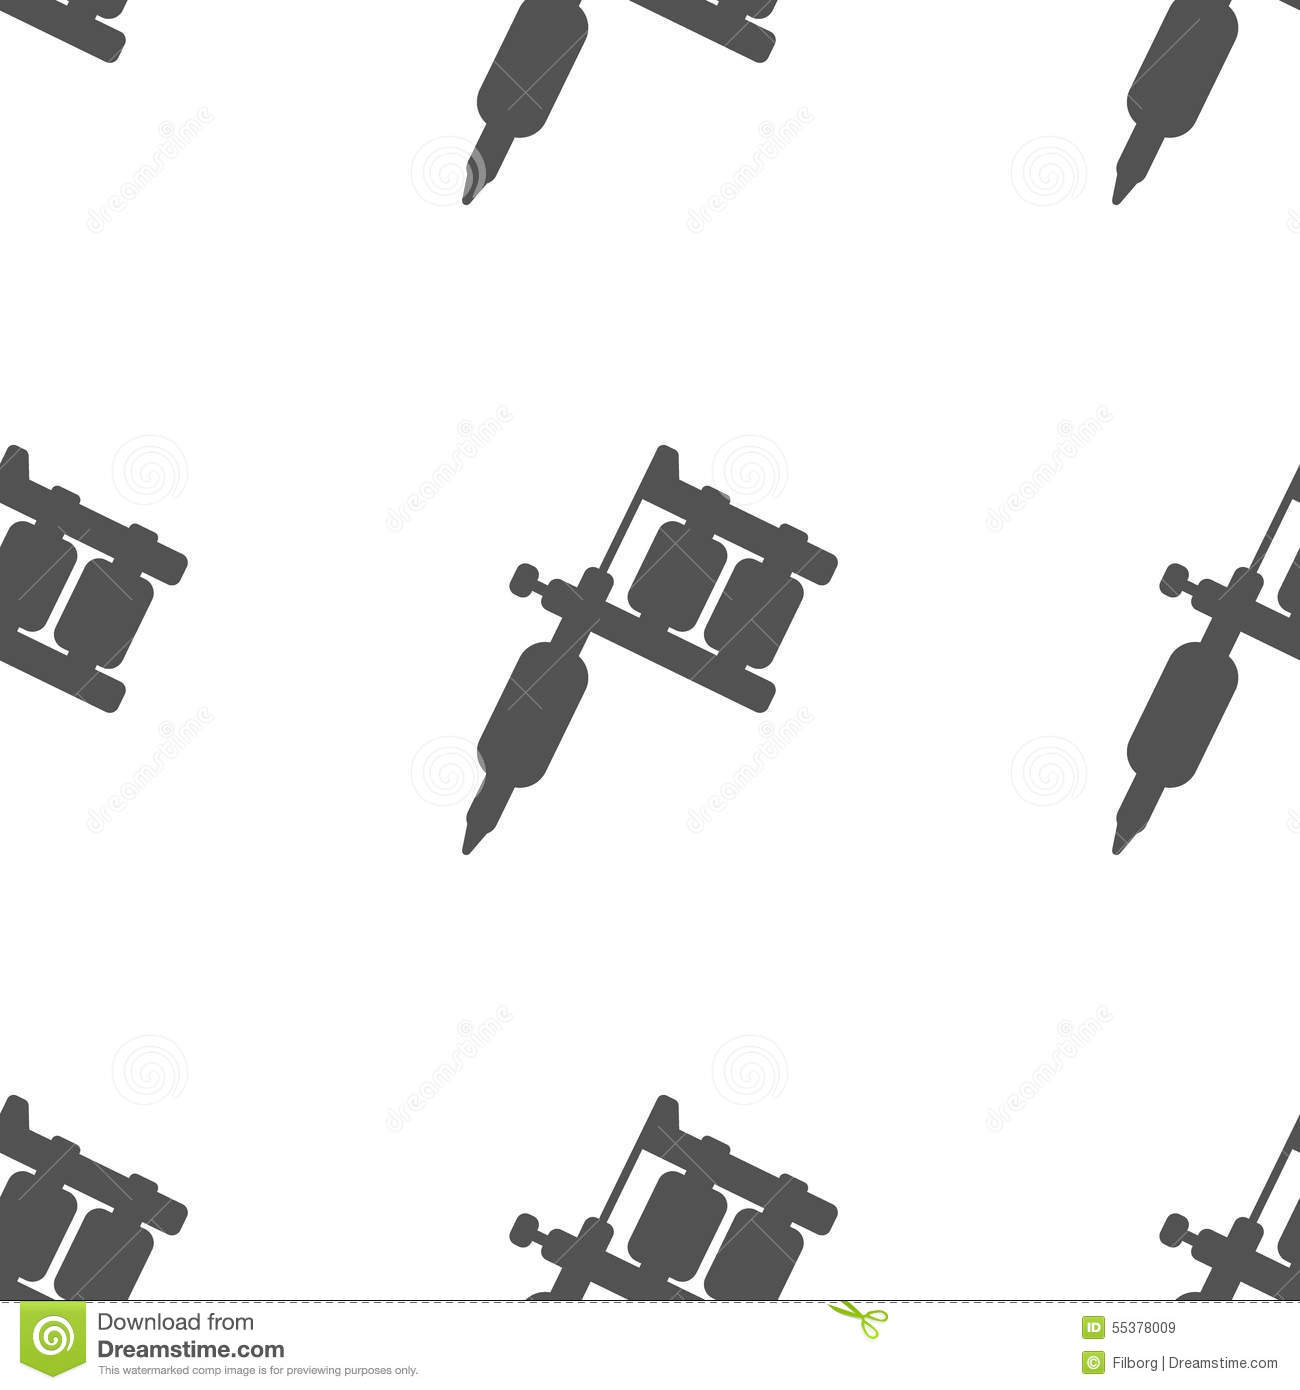 Tattoo Machine Pattern Royalty Free Vector Download